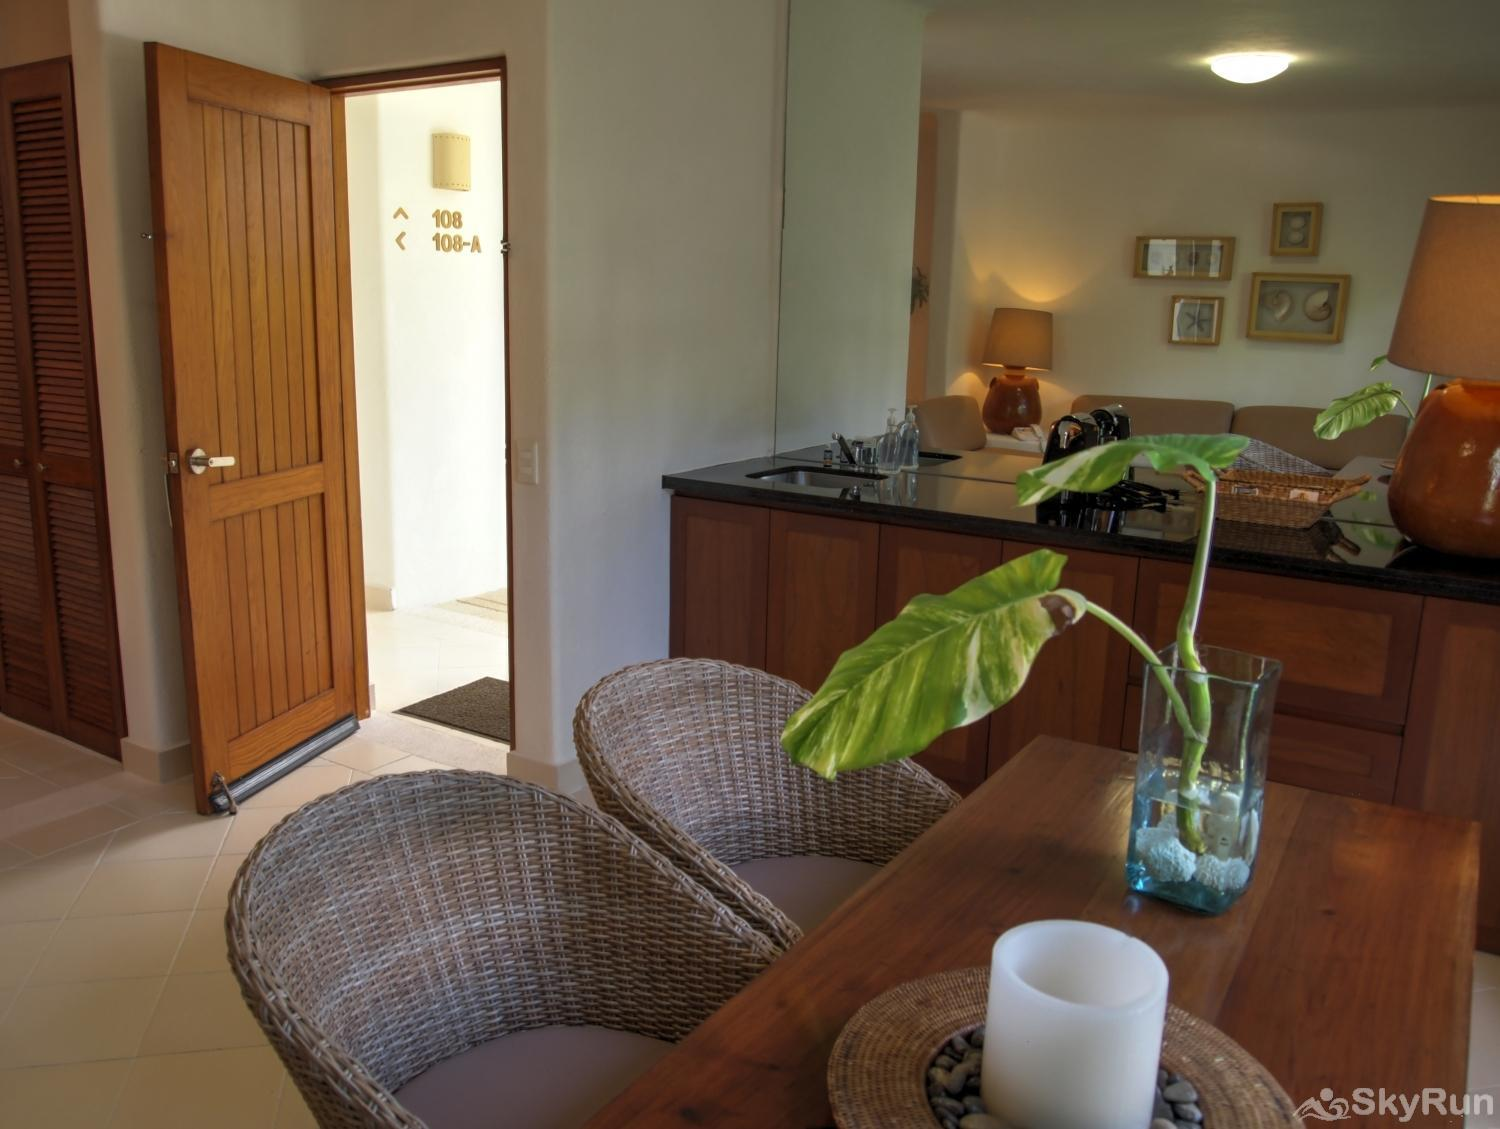 Bliss Akumal Condo Villa 1 Bedroom Garden View 108A Bliss Akumal Condo Villa 1 Bedroom Garden View 108A